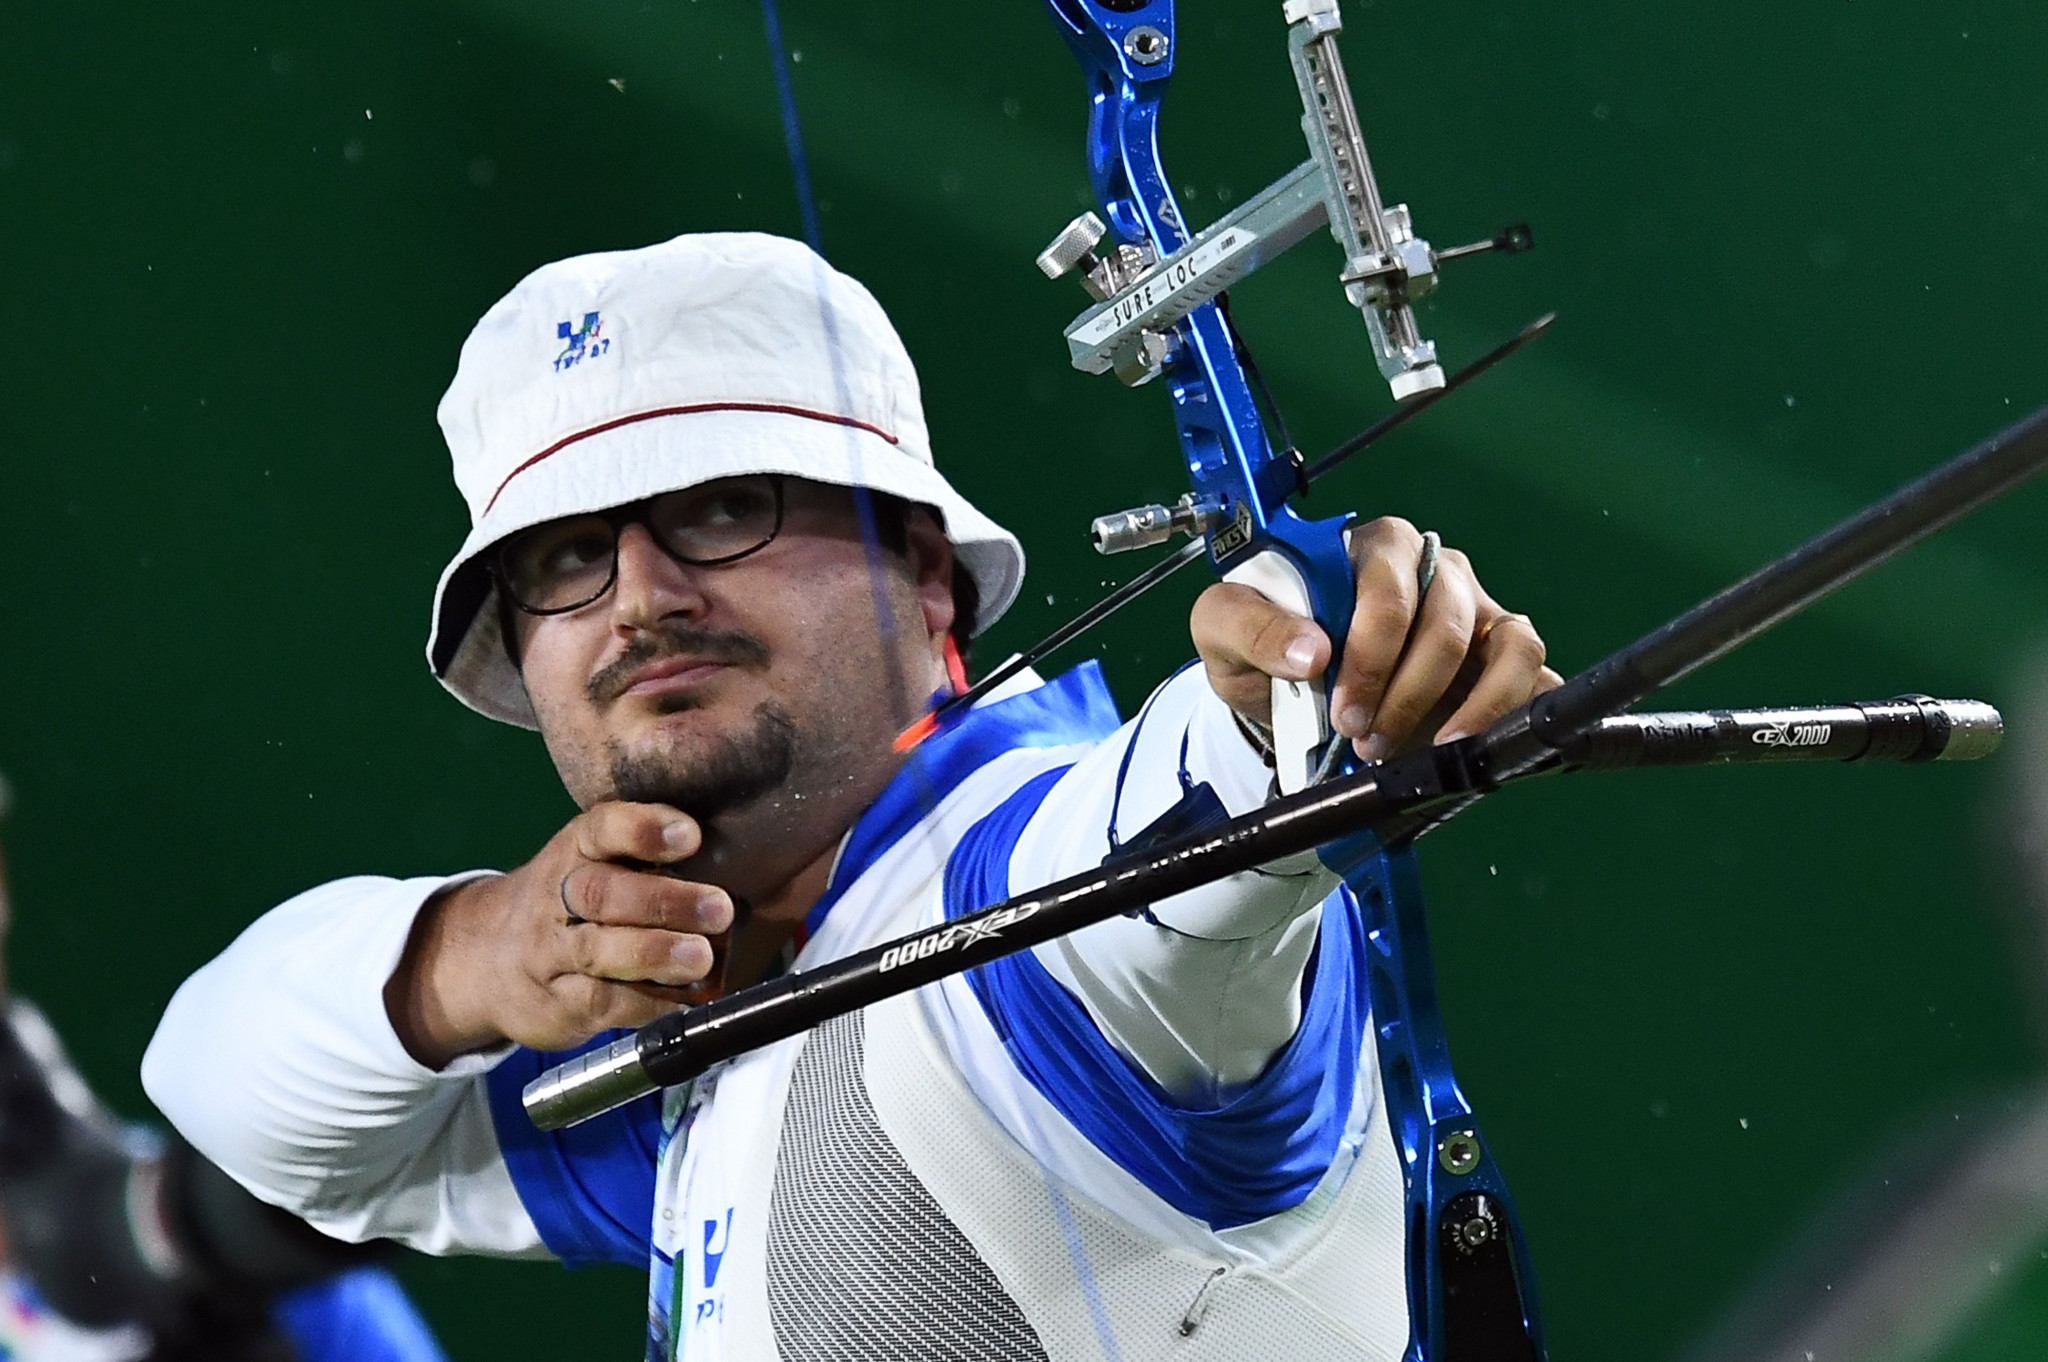 Marco Galiazzo of Italy won the men's recurve at the World Archery Indoor Series event in Rome ©Getty Images